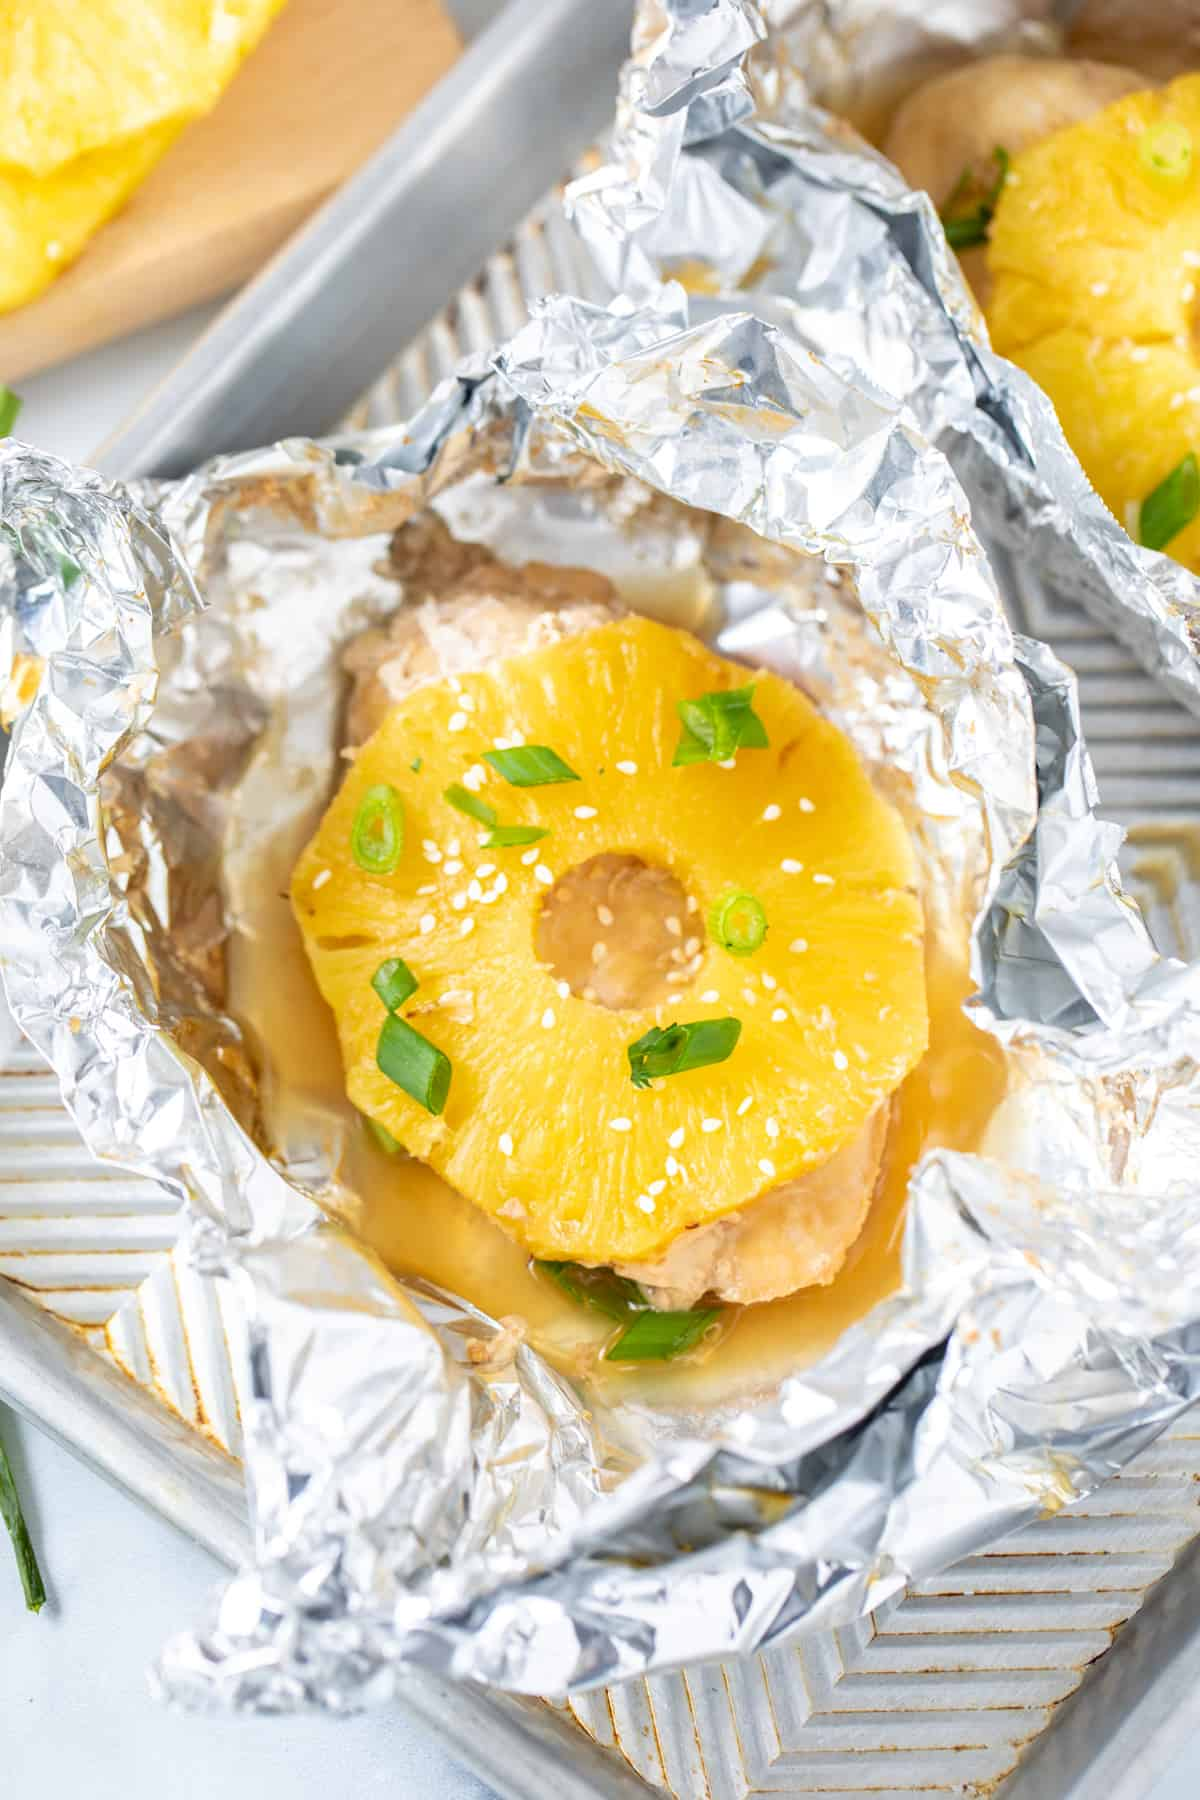 Chicken with Teriyaki Sauce and pineapple in foil packet.